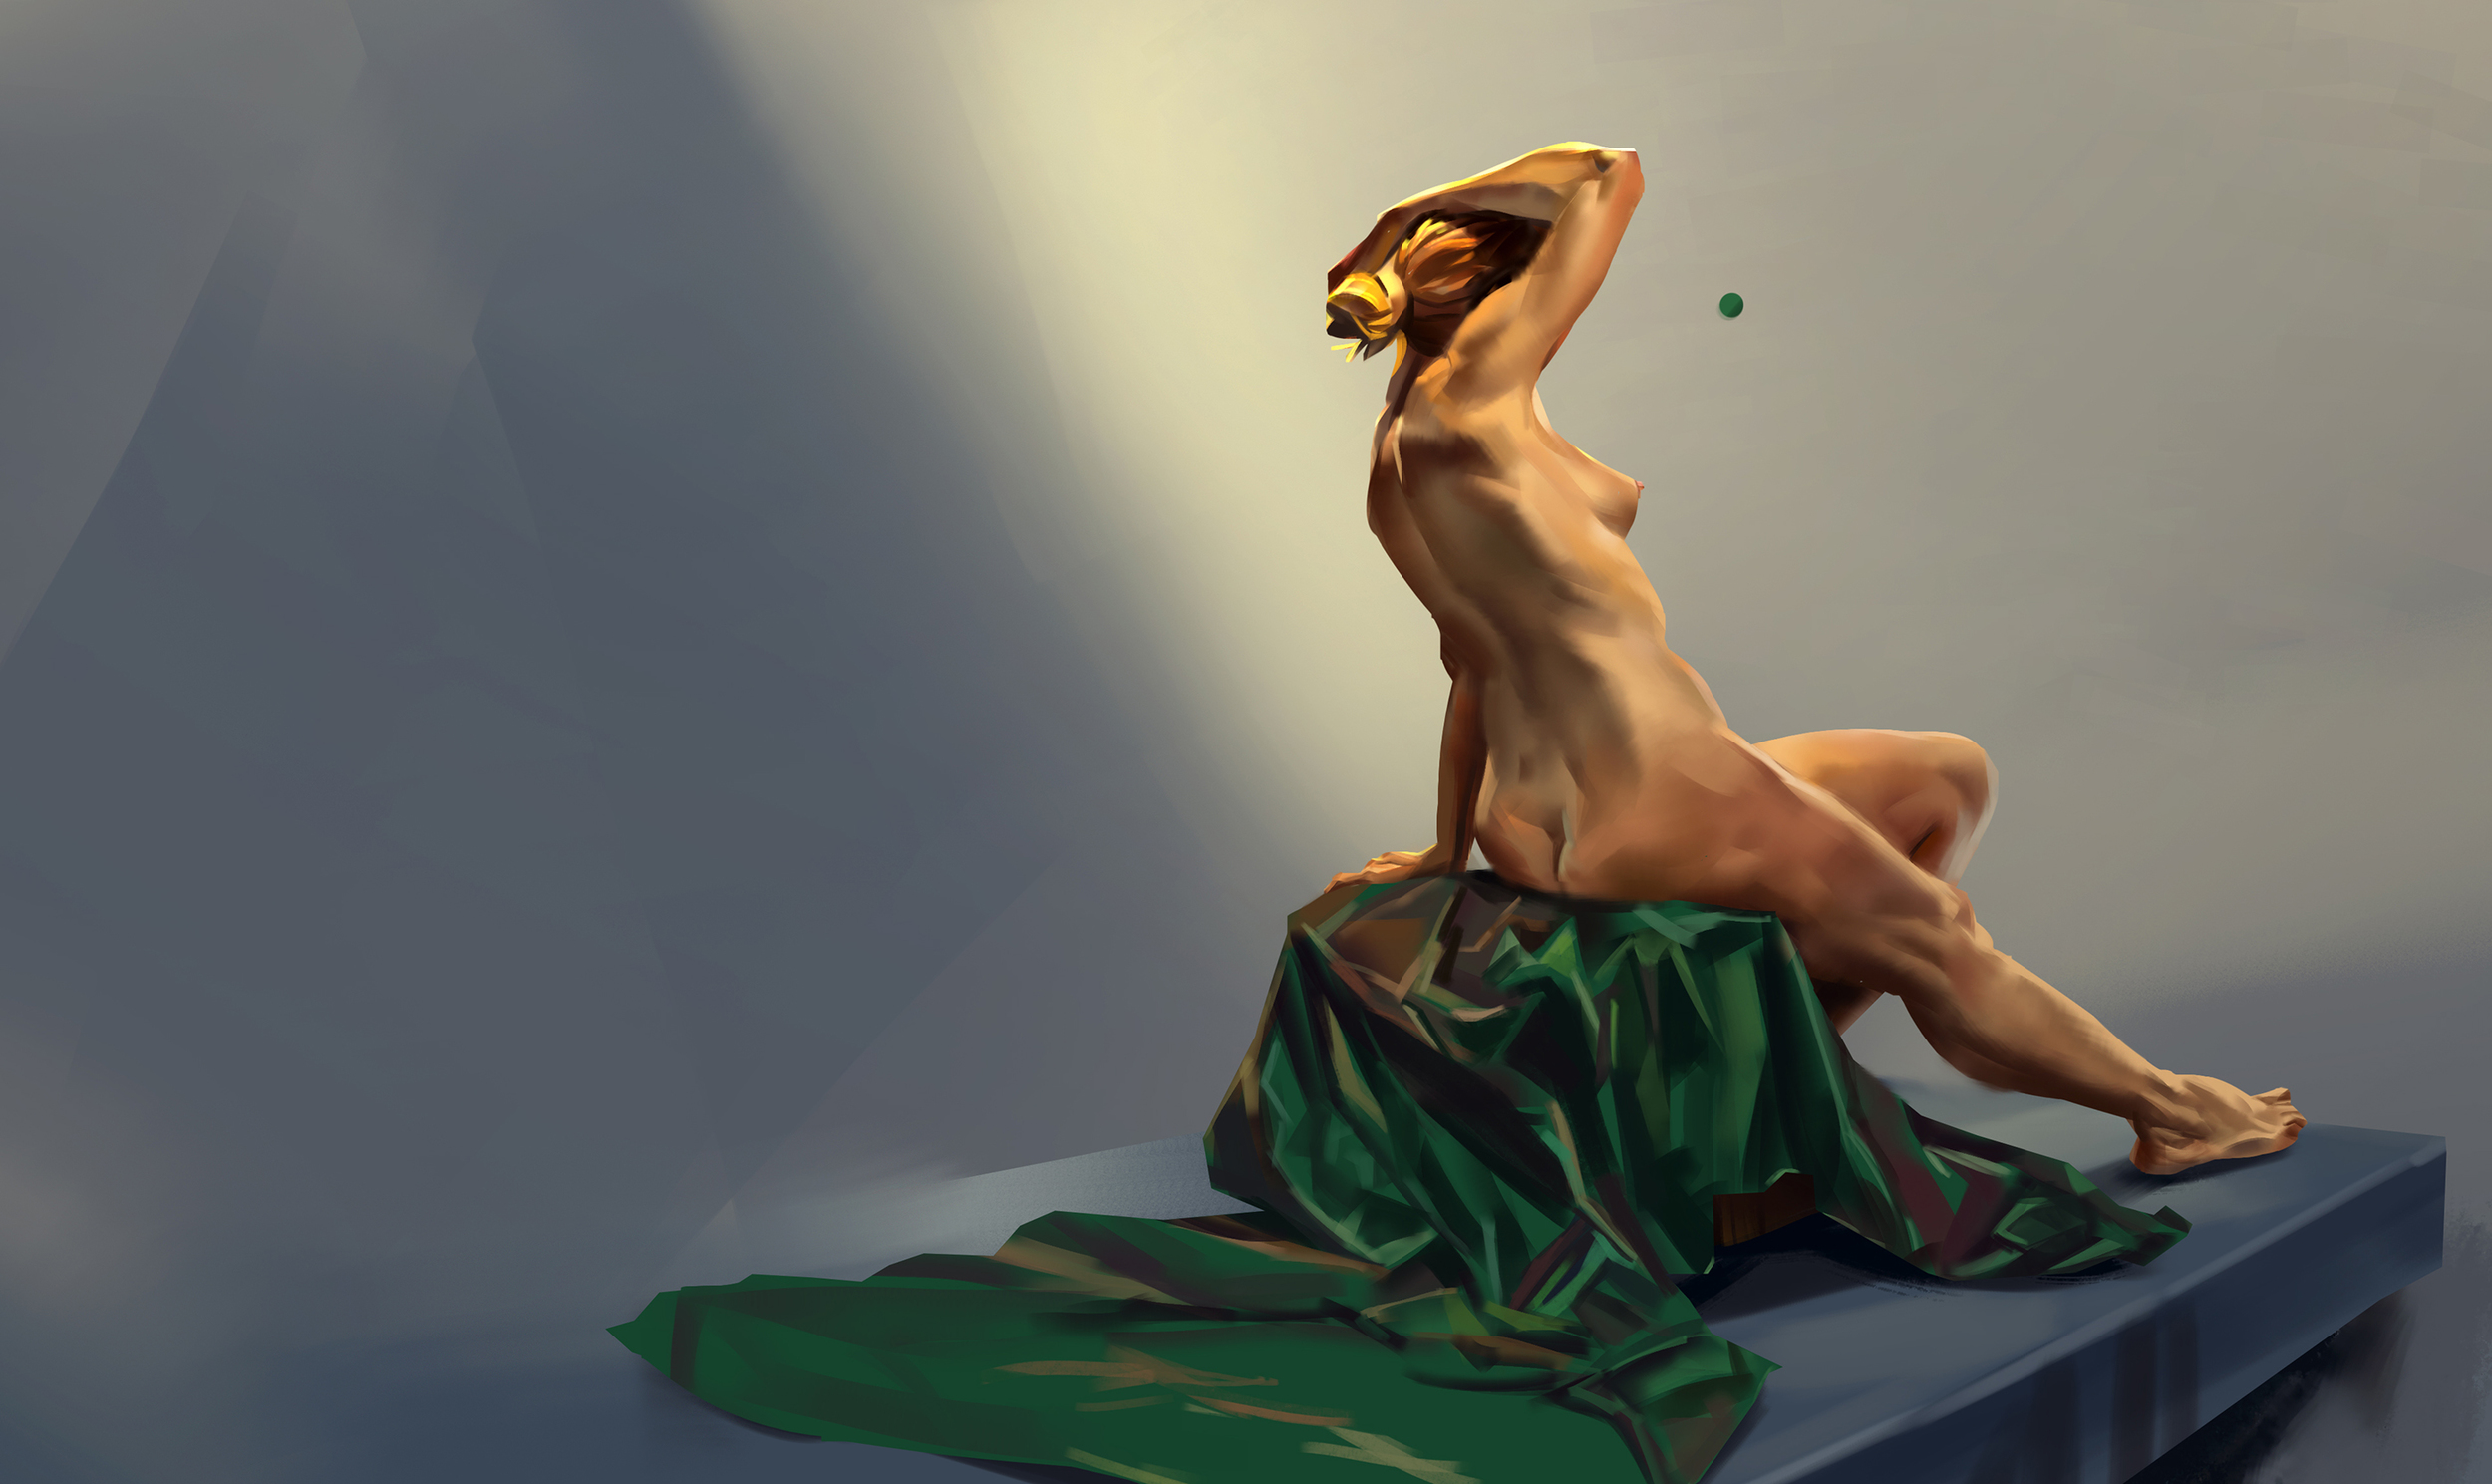 LifeDrawing_LongMarch2015_01.jpg